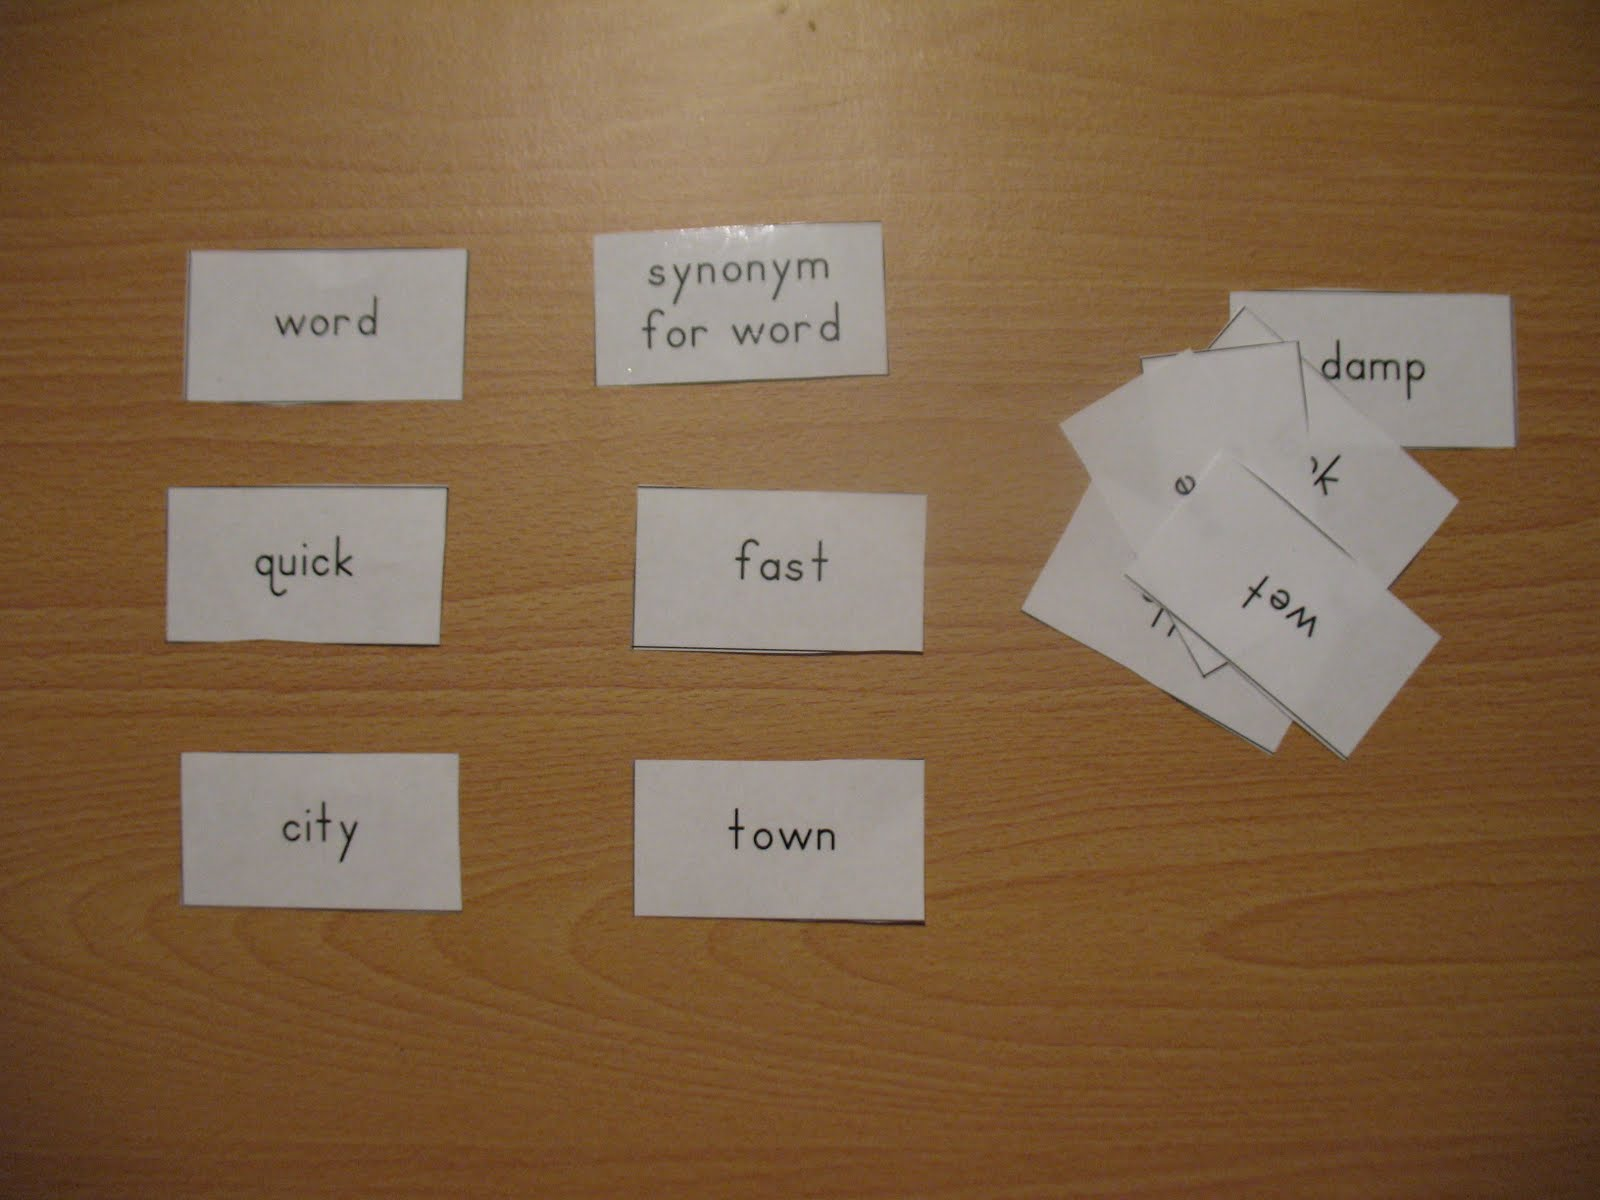 Worksheet Synonyms Of Anatomy montessori for learning synonym fun i first introduce synonyms by using materials they are pictured below we place the heading cards at top of workspace and then separate